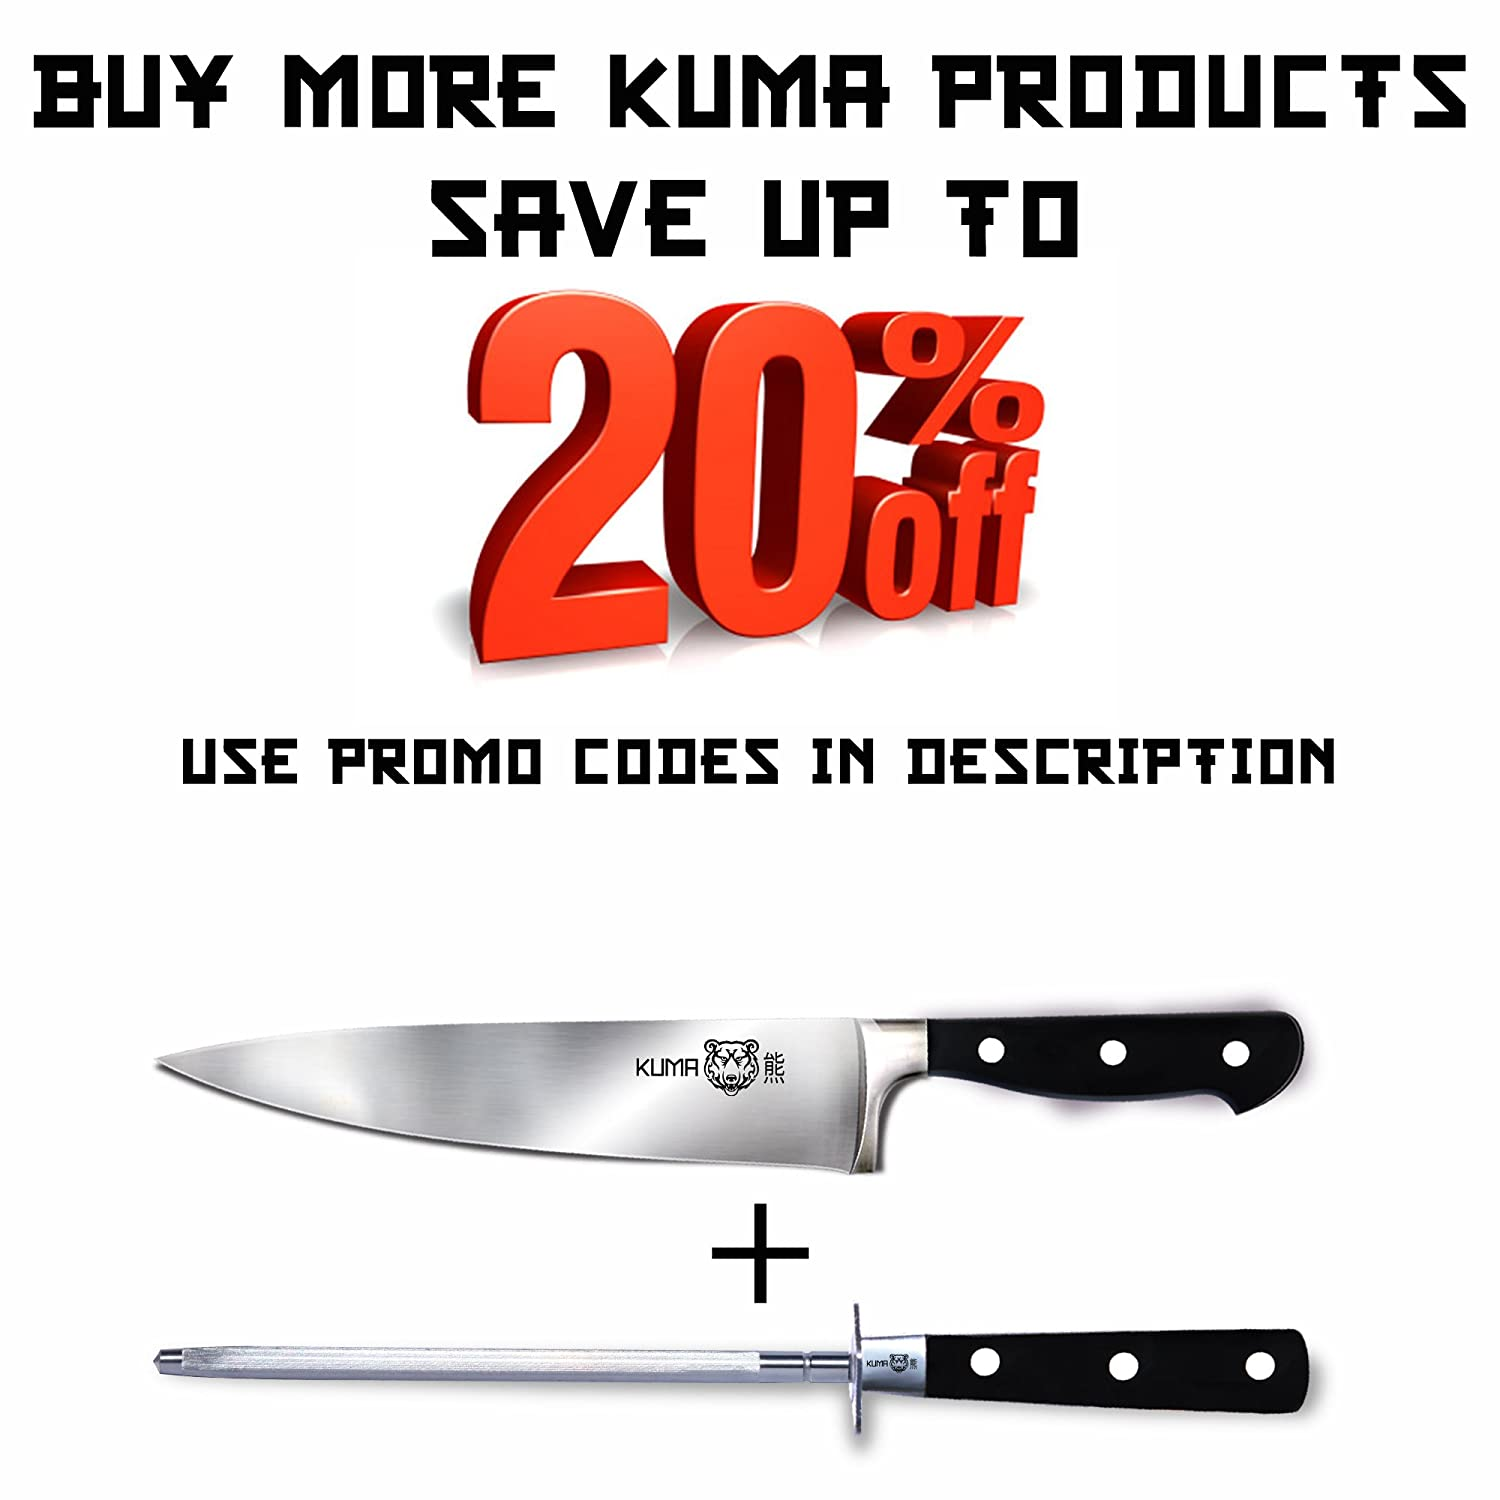 amazon com kuma kitchen knife sharpener works like magic best amazon com kuma kitchen knife sharpener works like magic best 8 inch steel honing rod for sharpening your chef s knife carving knife chopping knives